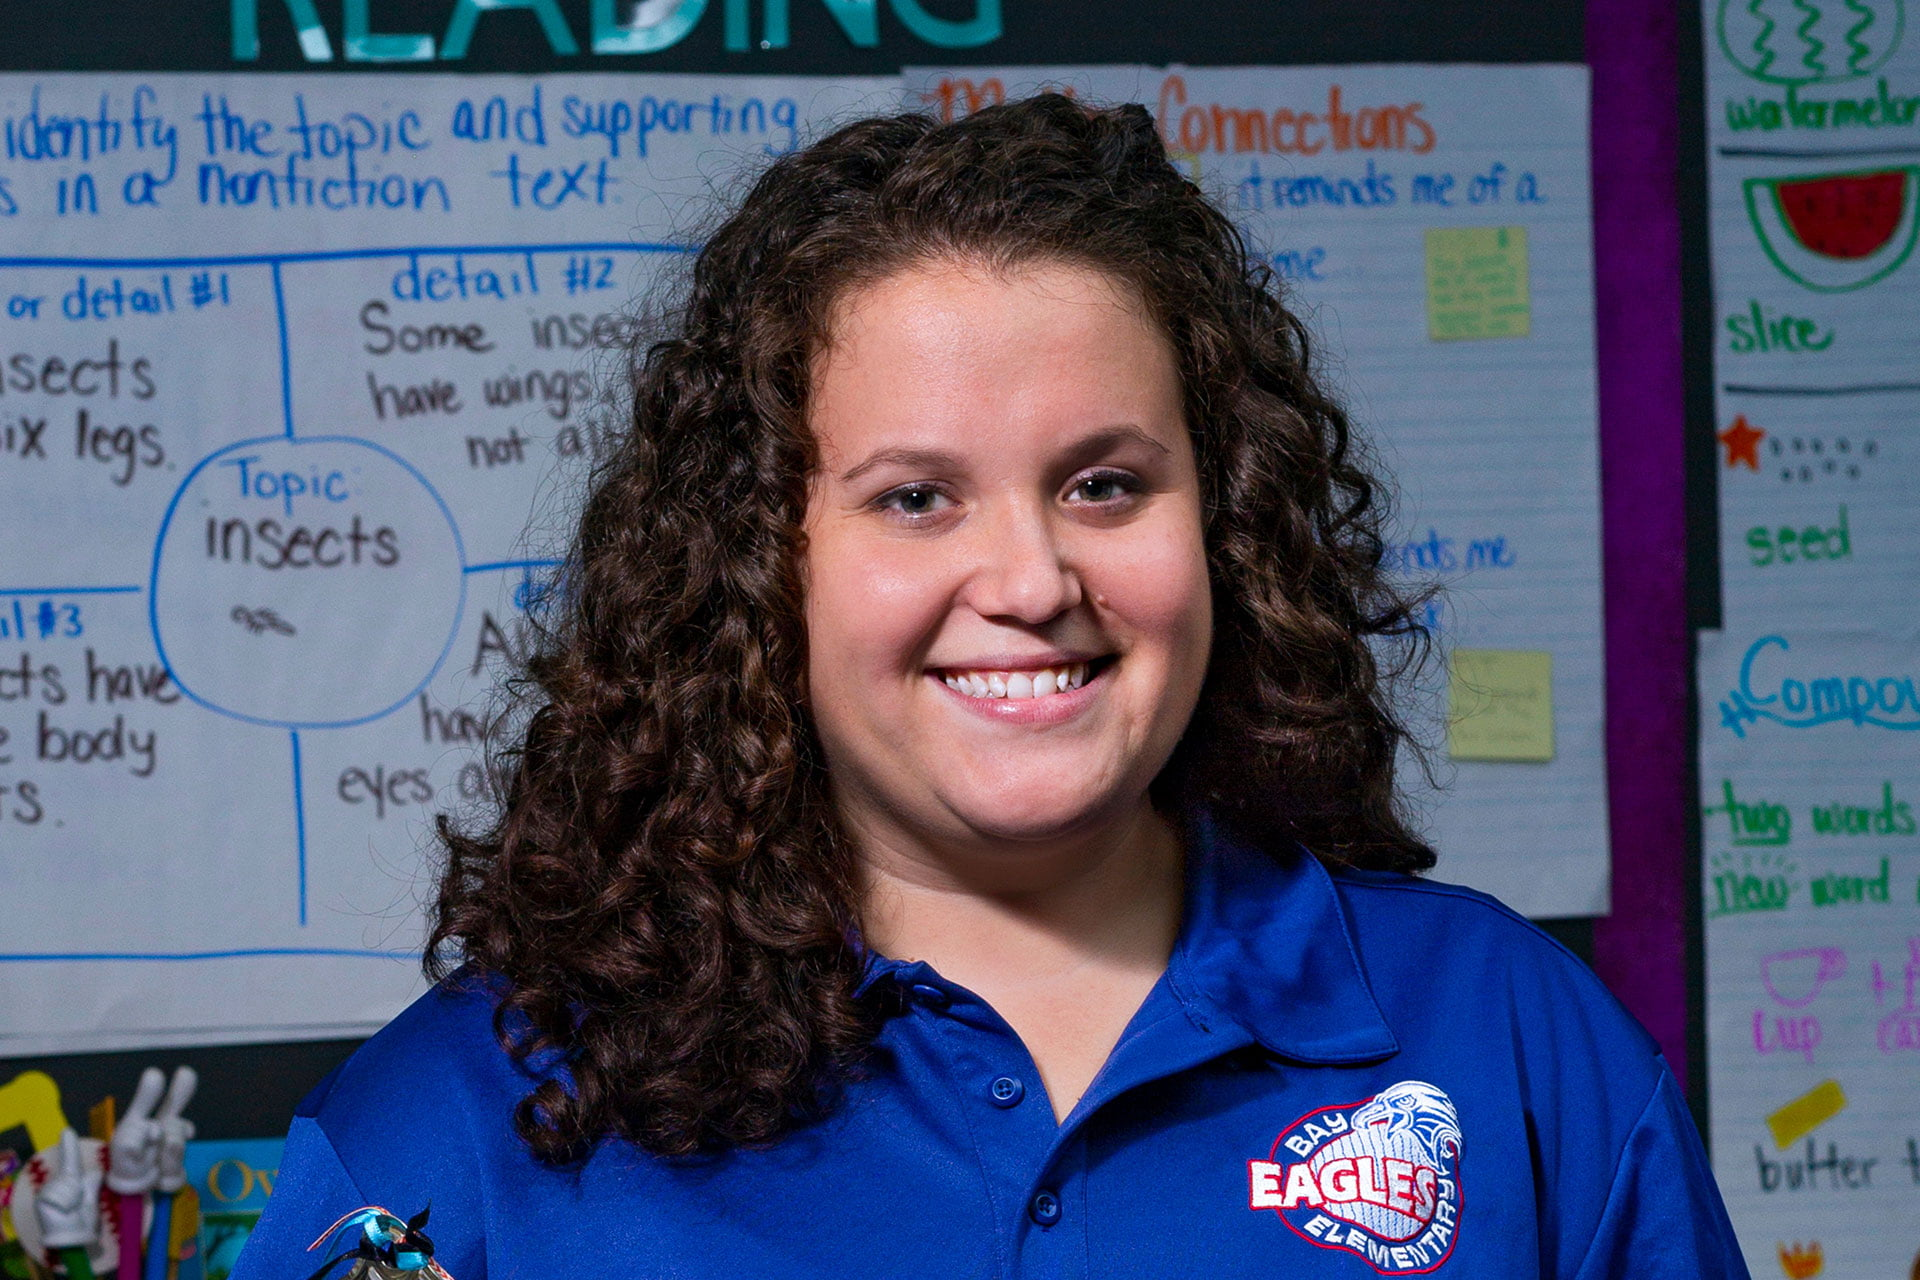 UHCL grad inspires leadership in young students through pilot program